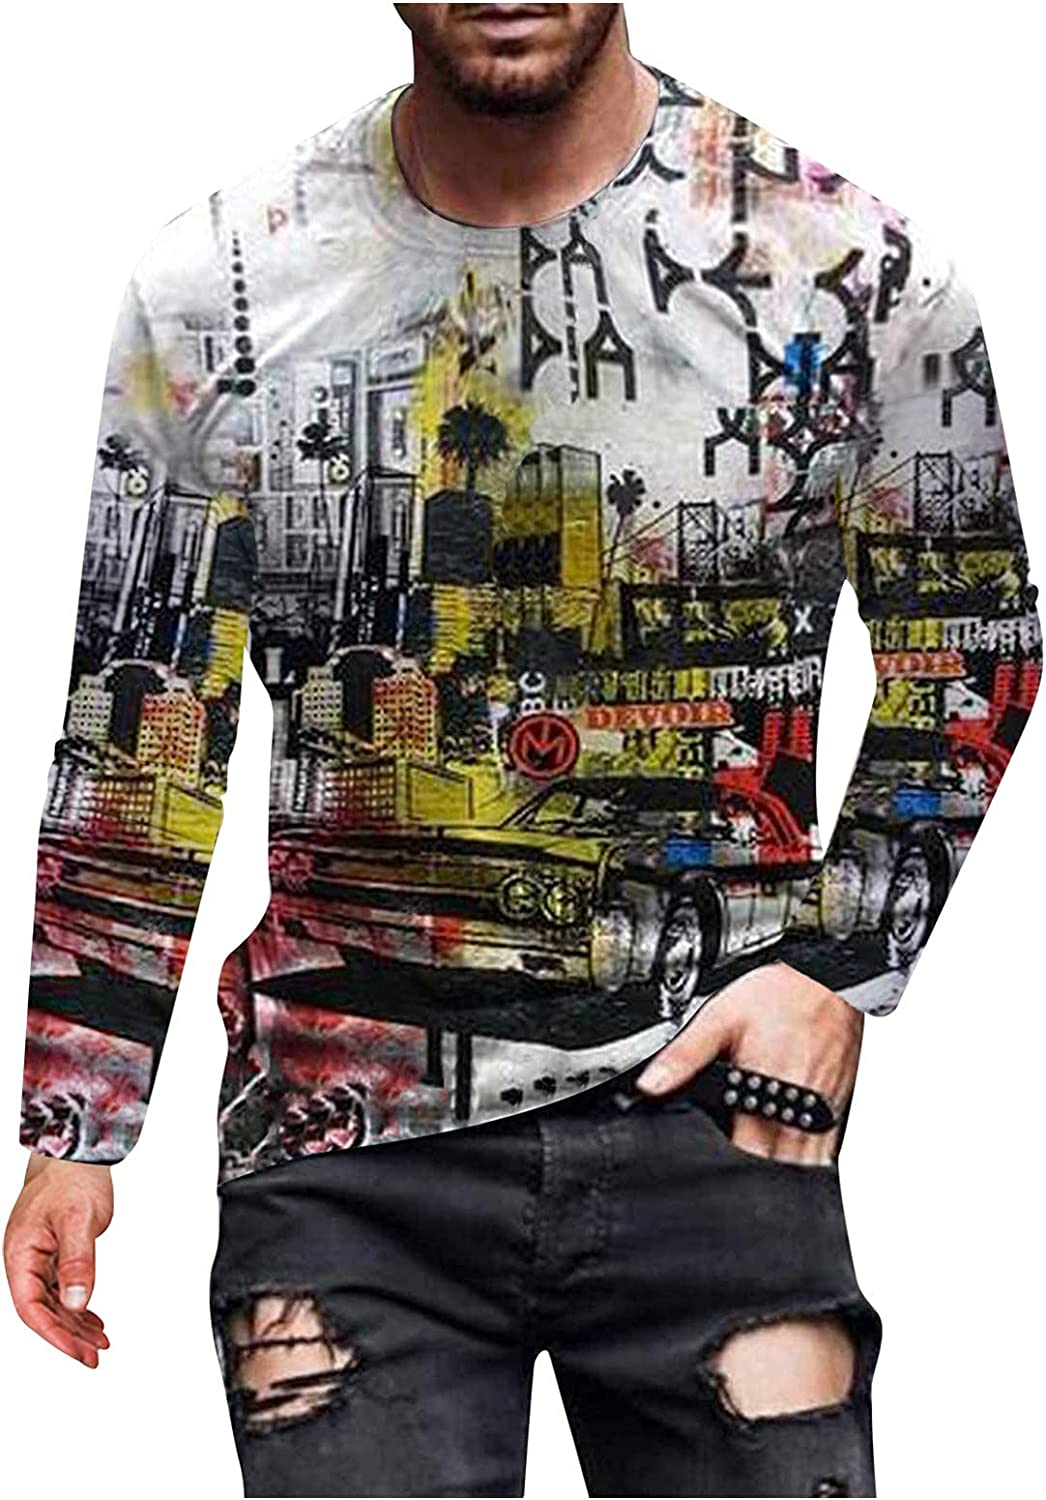 HONGJ Soldier Long Sleeve T-shirts for Mens, Fall Street Abstract Art Portrait Print Workout Athletics Crewneck Tee Tops